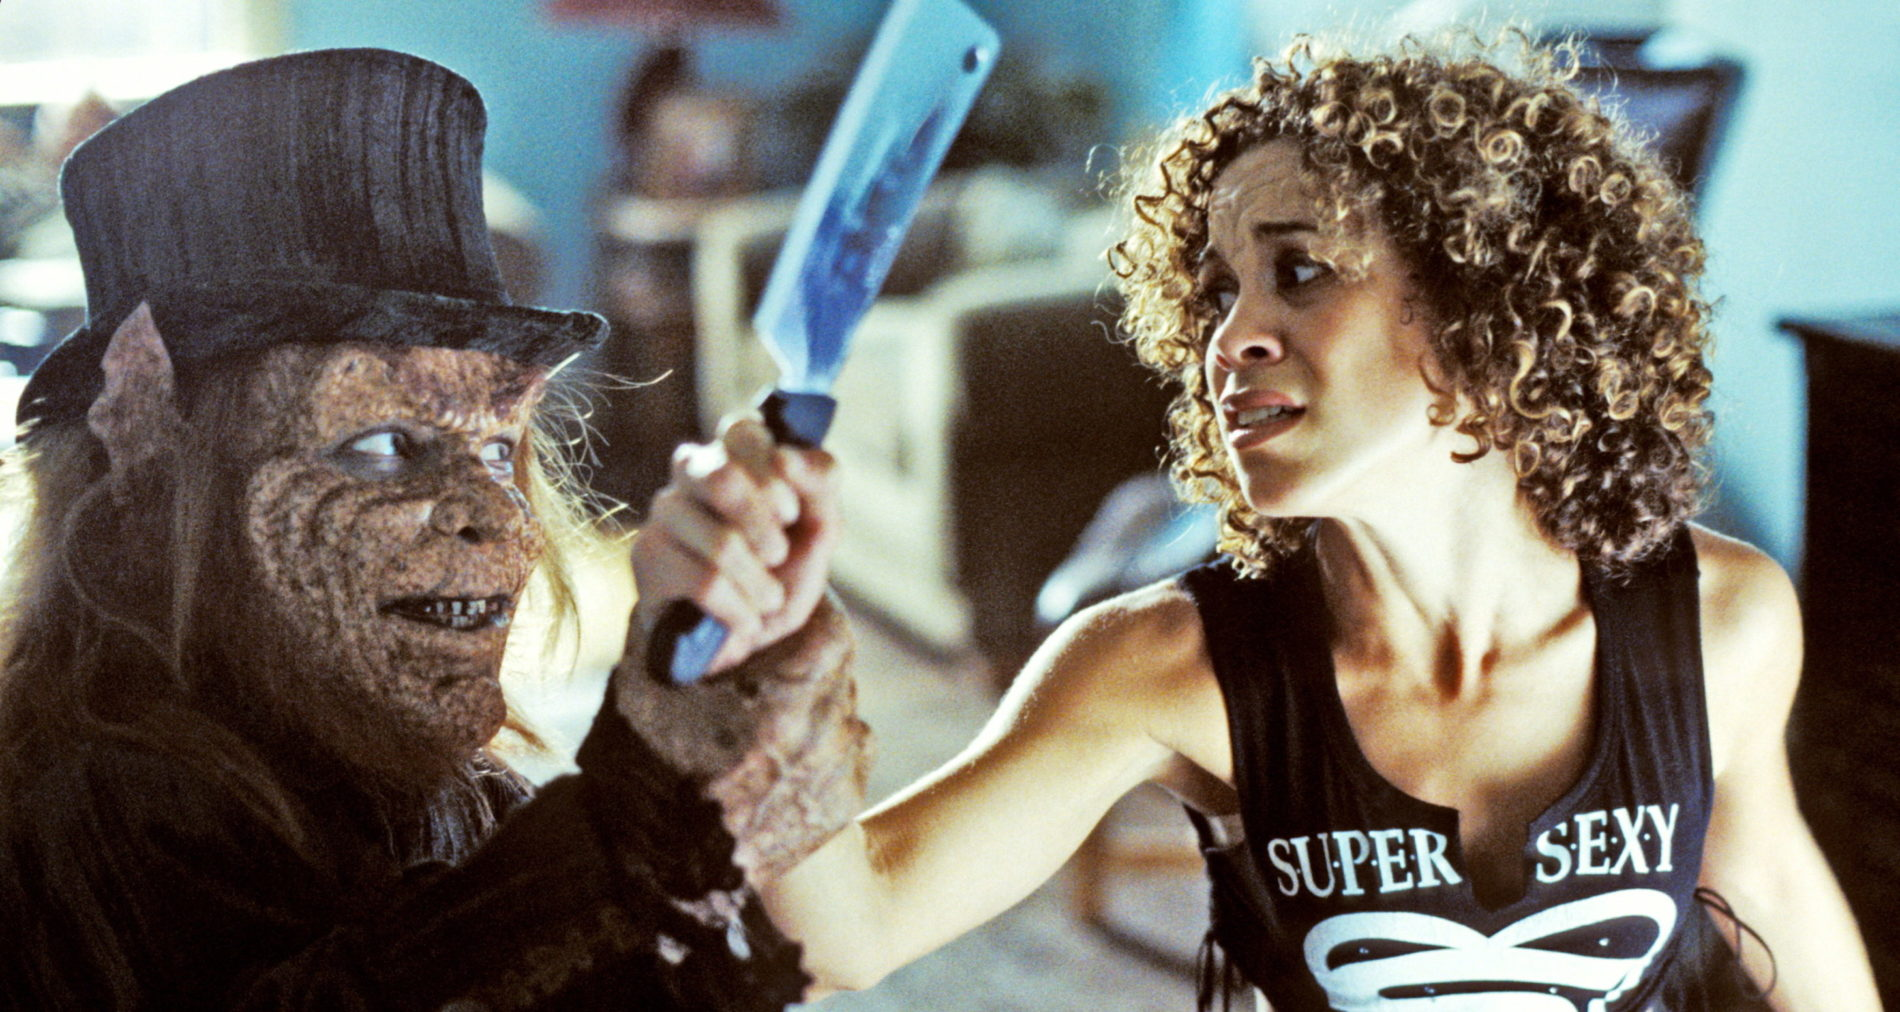 Warwick Davis and Sherrie Jackson in Leprechaun: Back 2 tha Hood